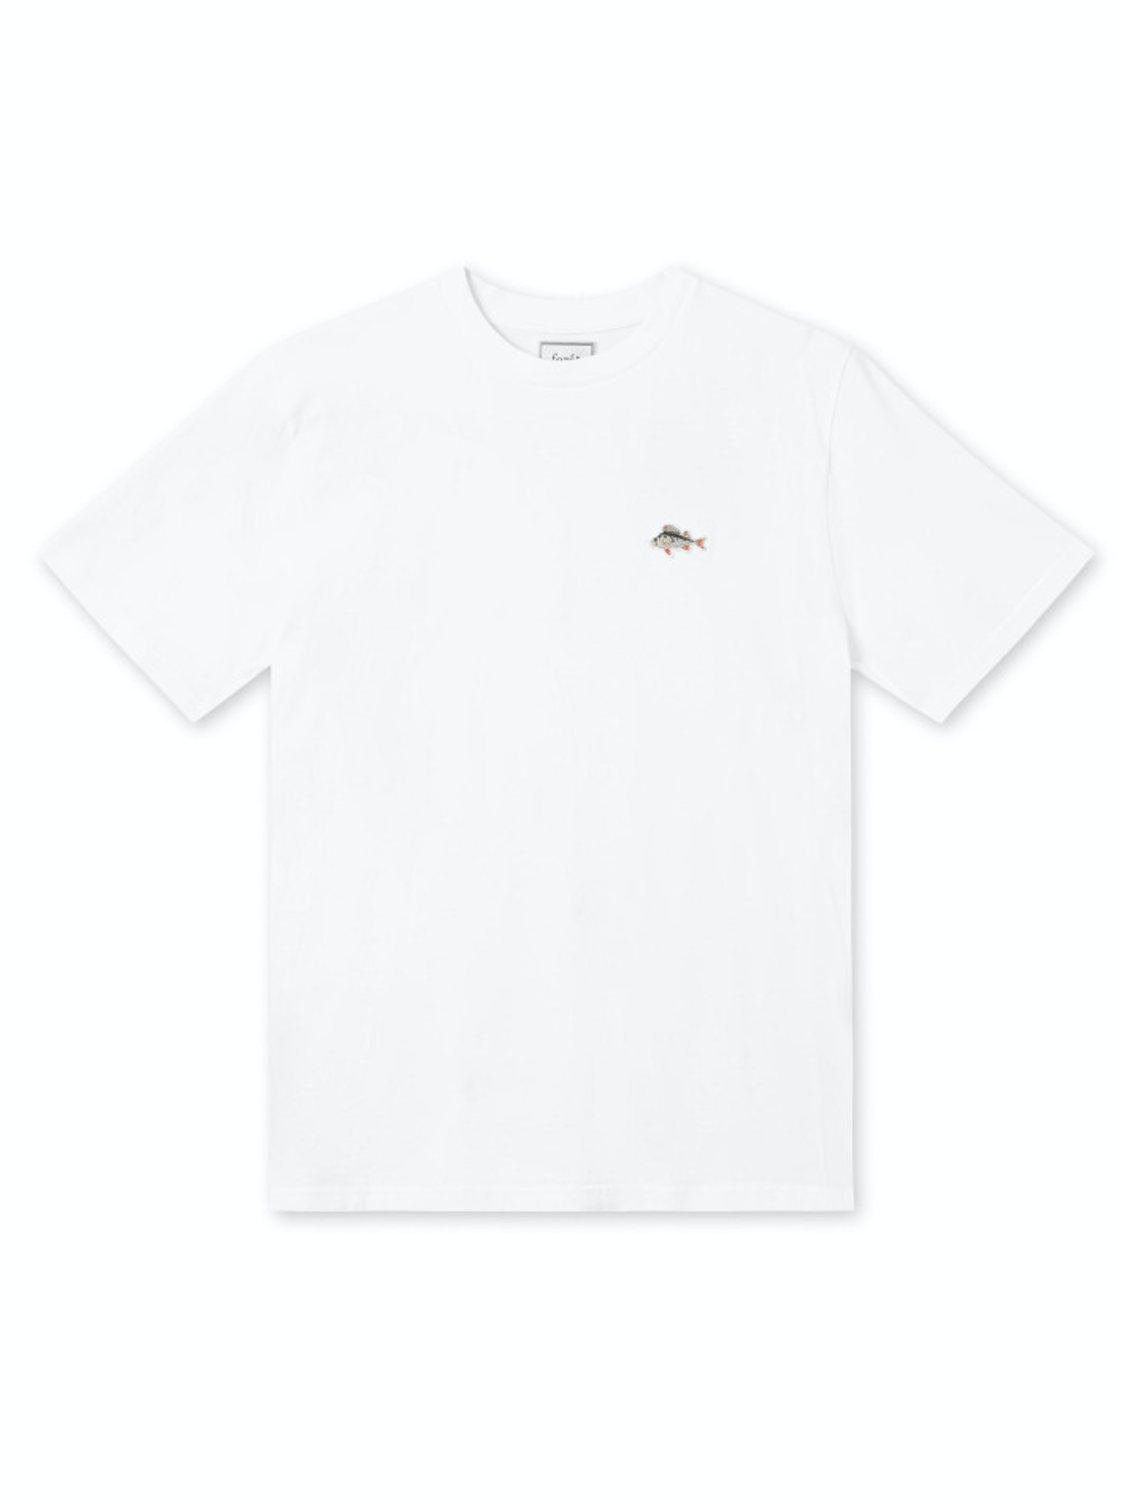 FORÉT - FISH T-SHIRT WHITE | GATE36 HOBRO